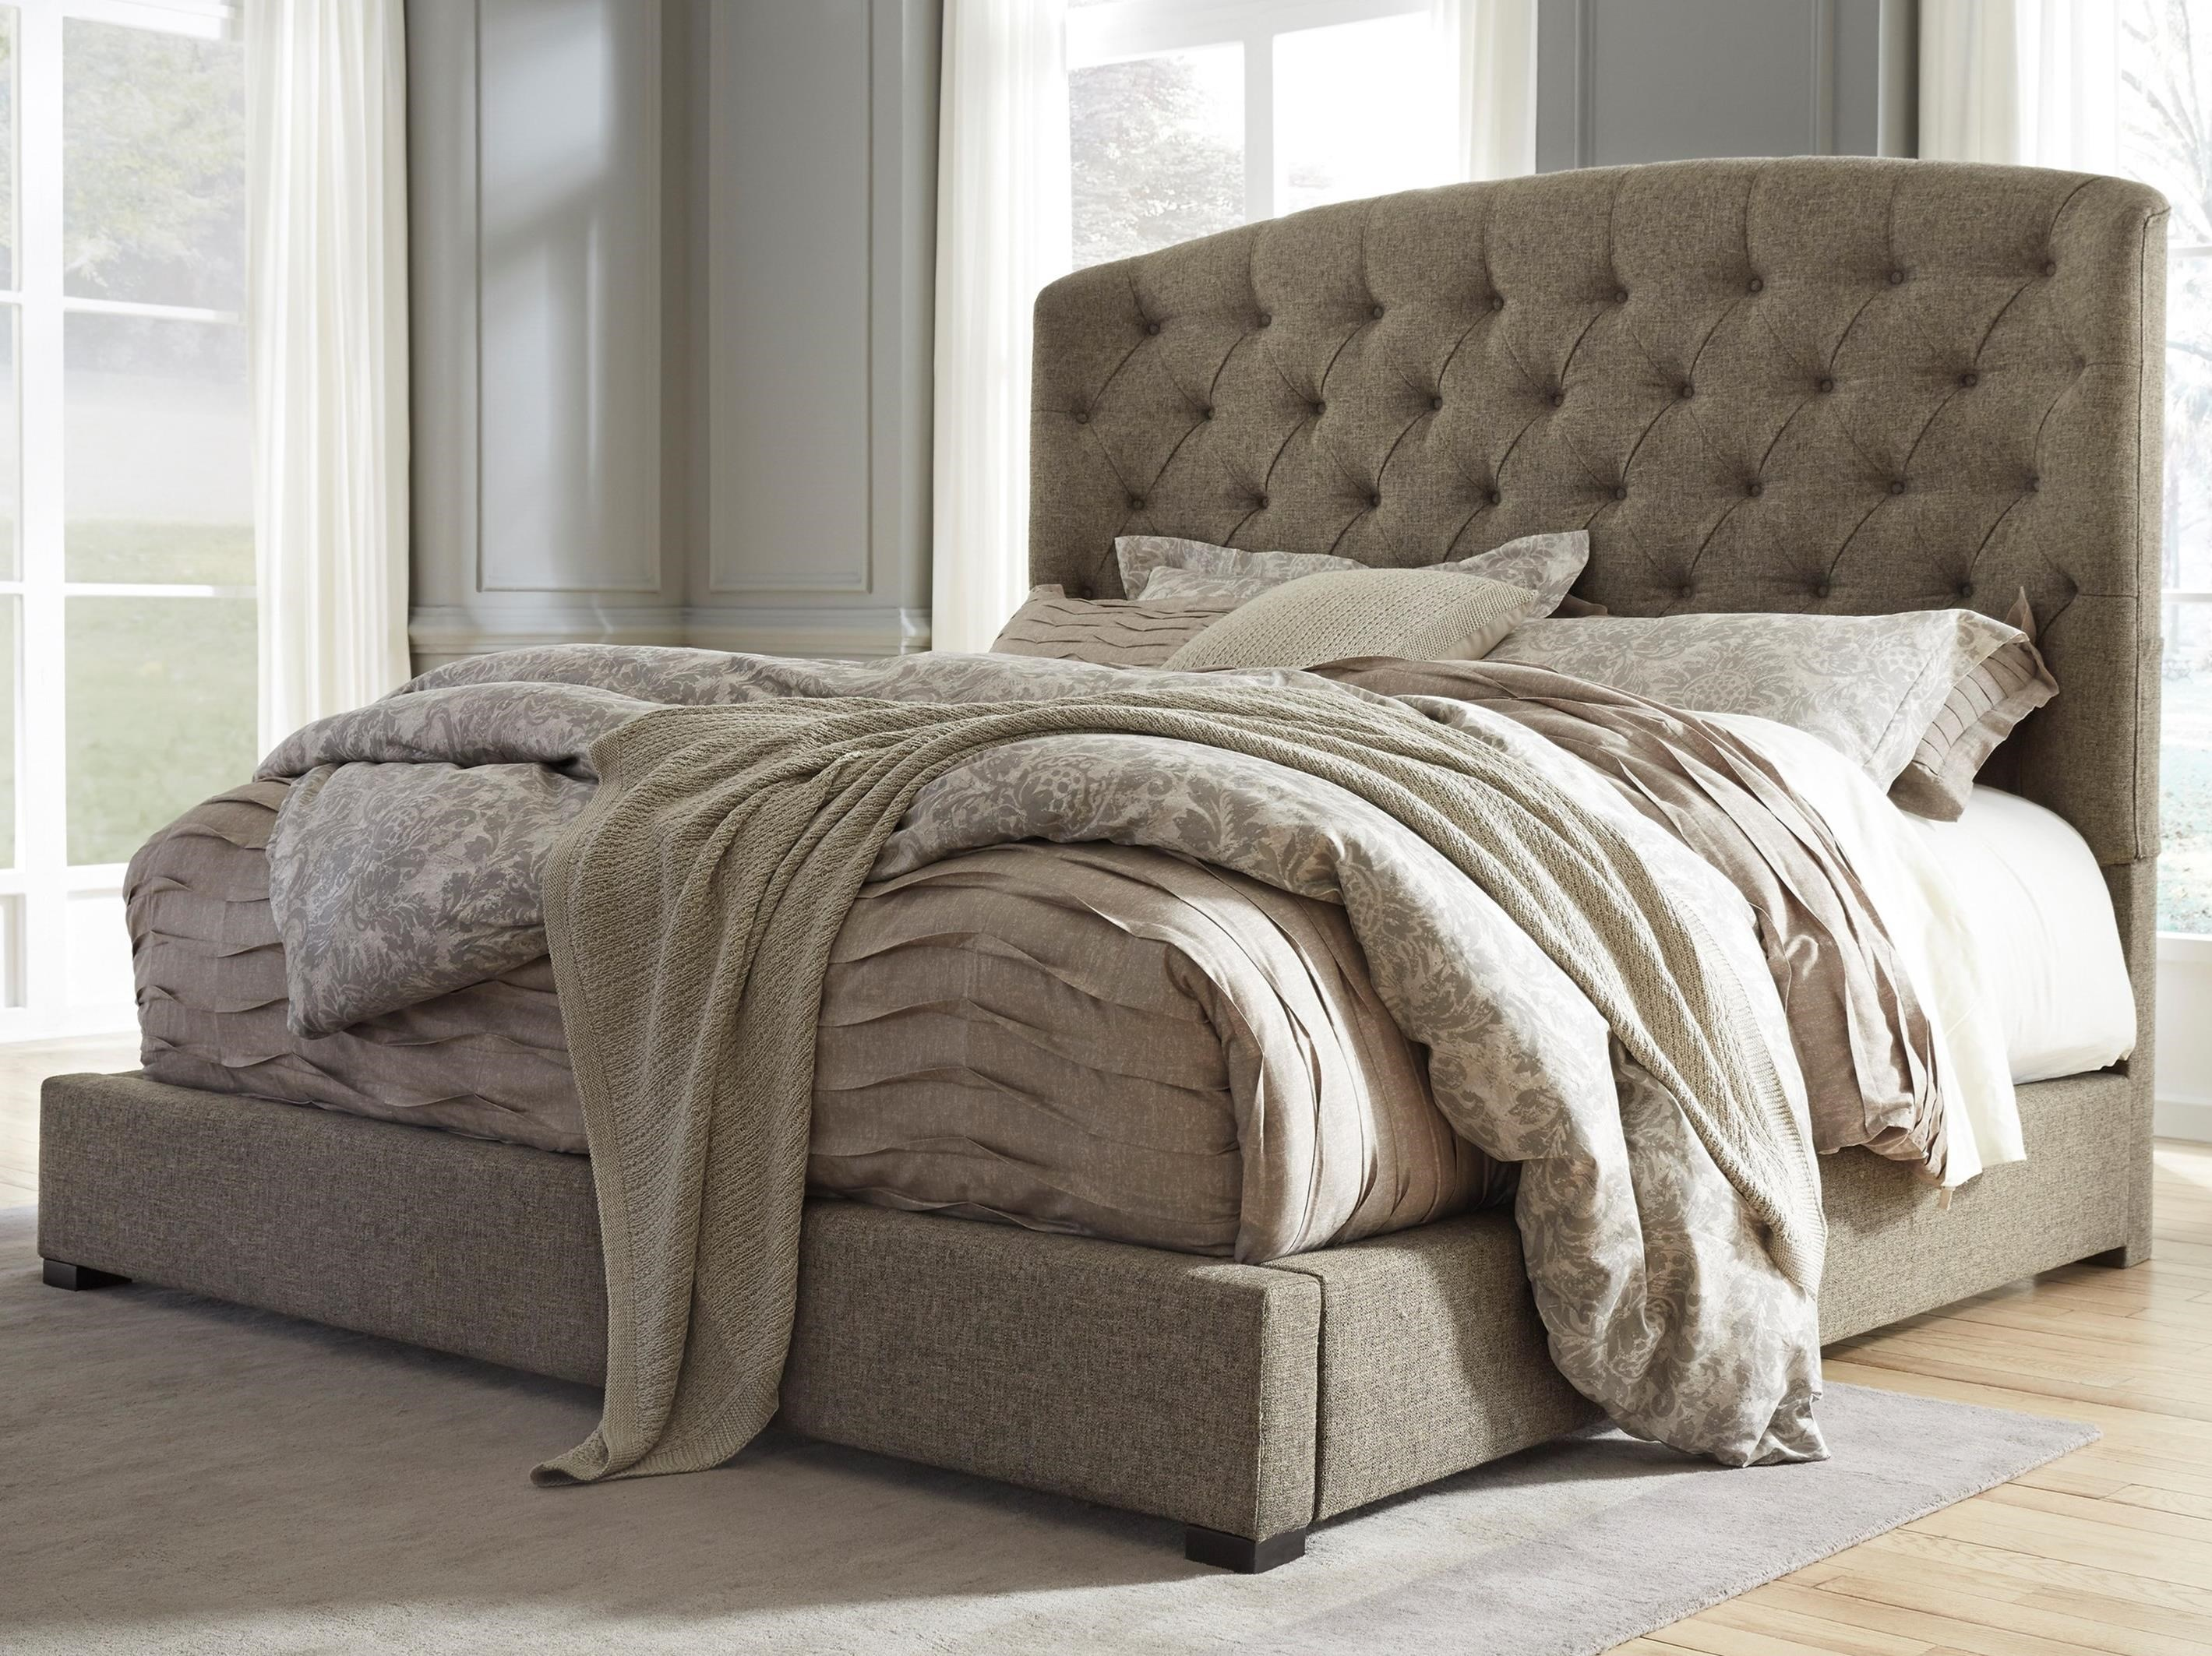 Gerlane Queen Upholstered Bed With Arched Tufted Headboard